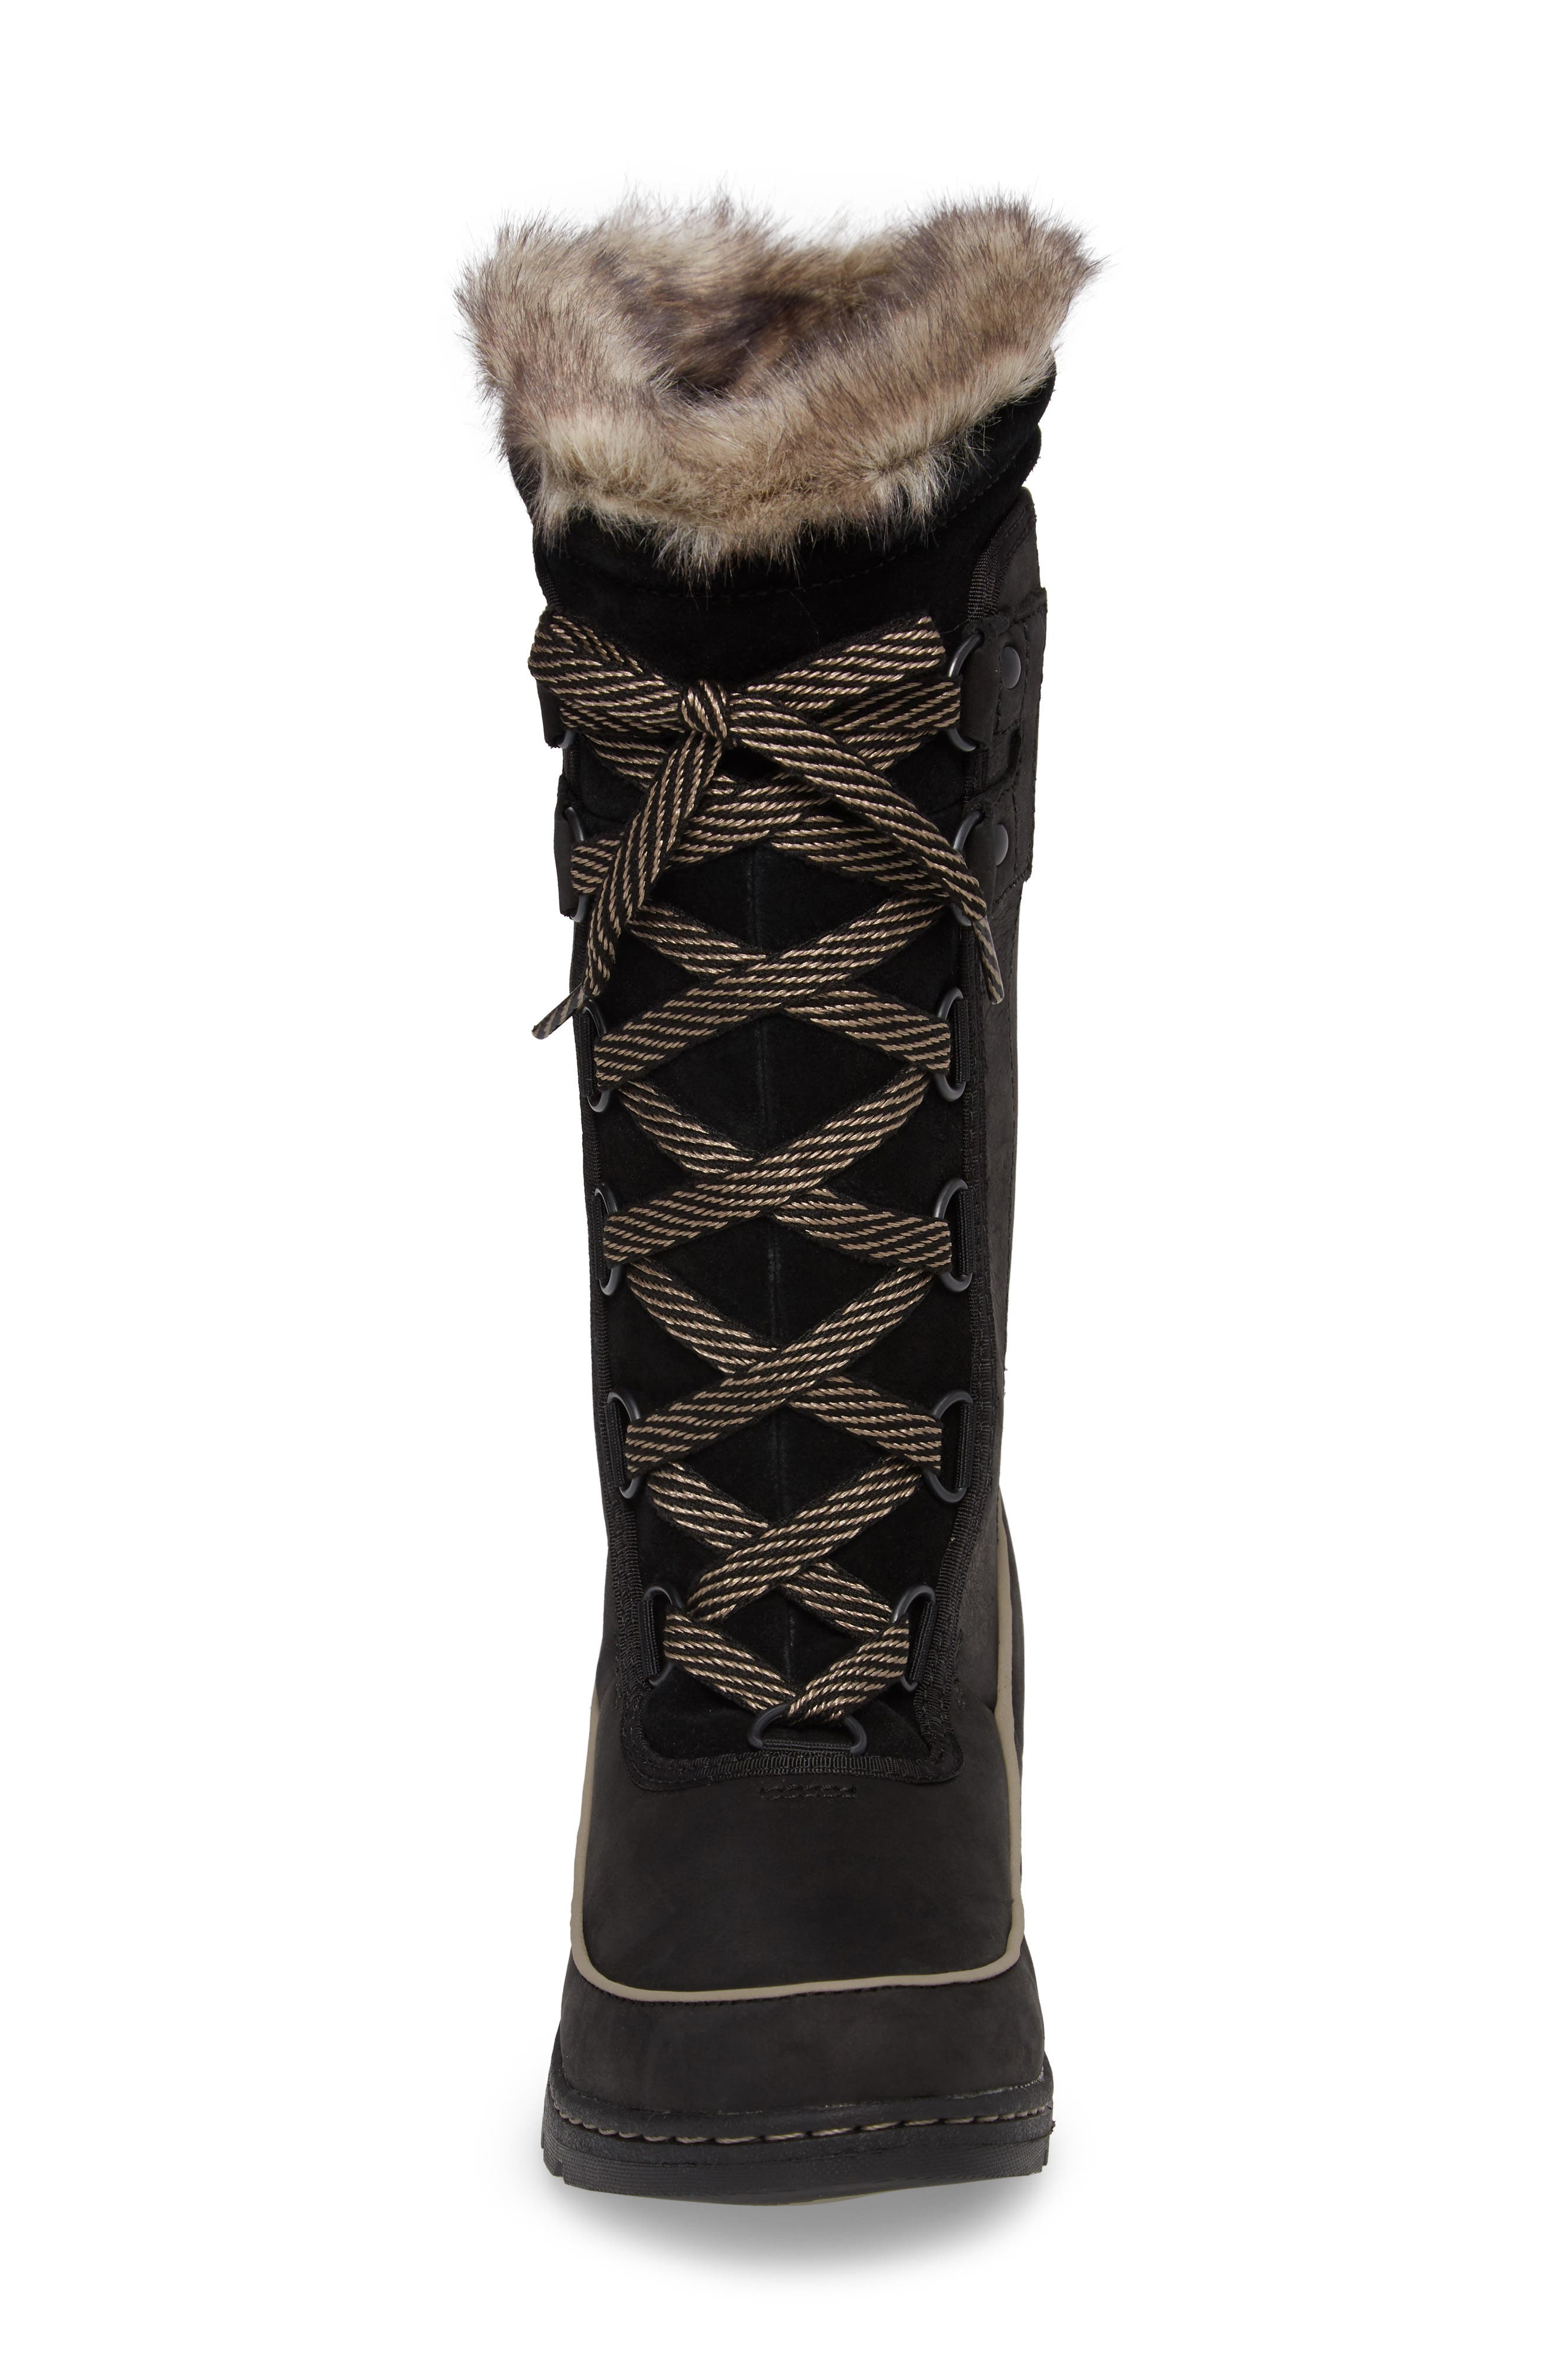 Alternate Image 5  - SOREL Tivoli II Insulated Winter Boot with Faux Fur Trim (Women)